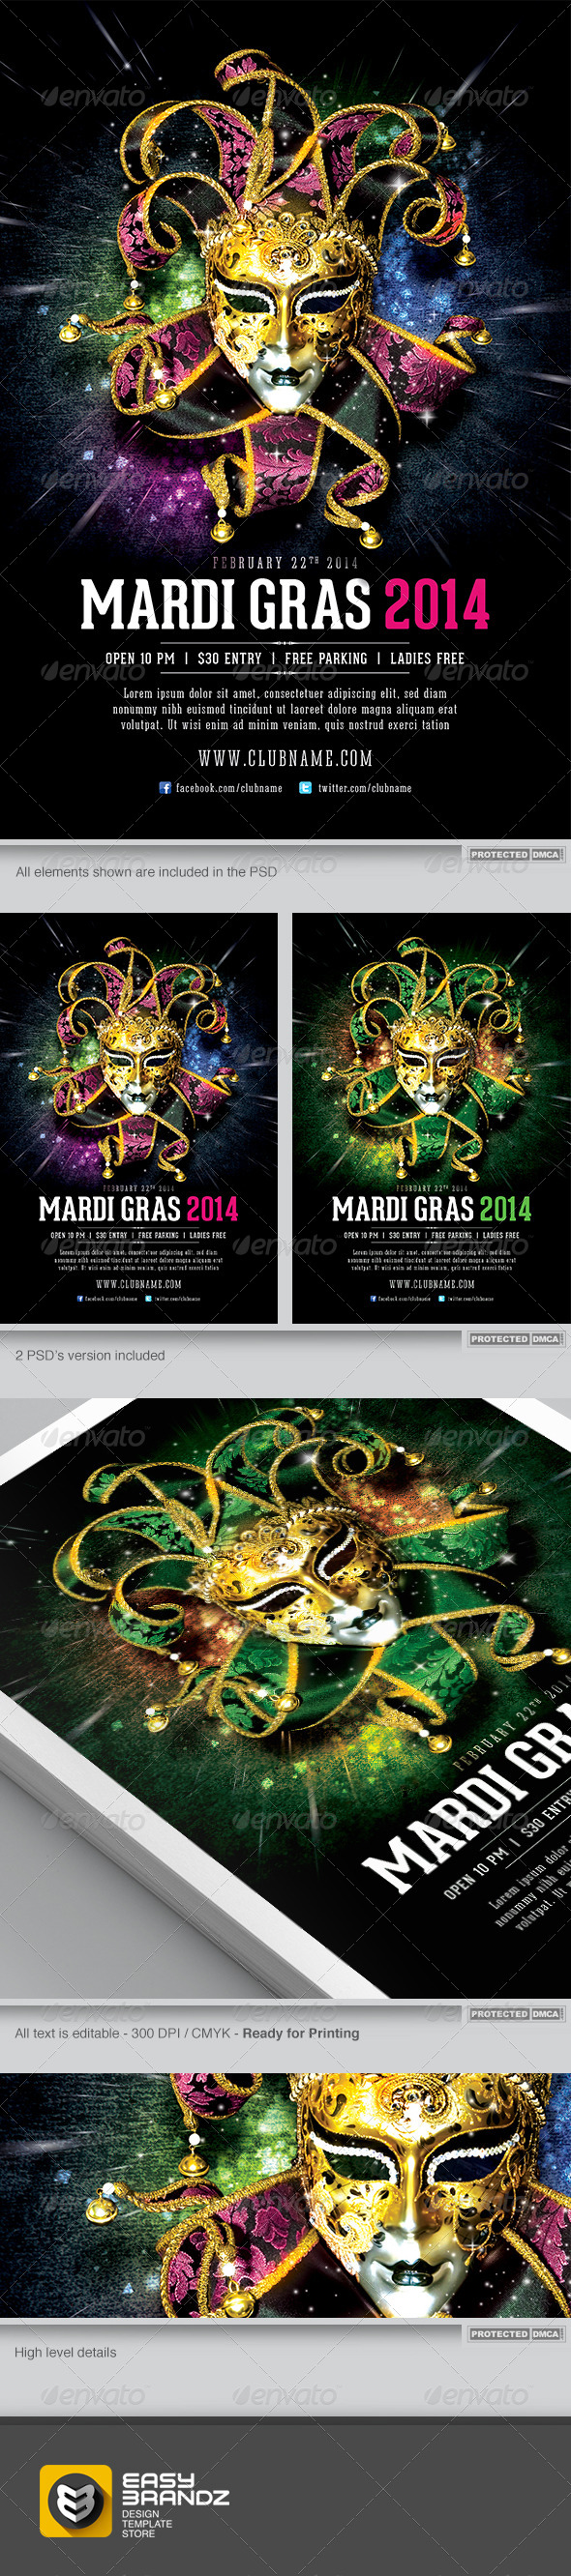 Mardi Gras 2014 Flyer Template - Events Flyers